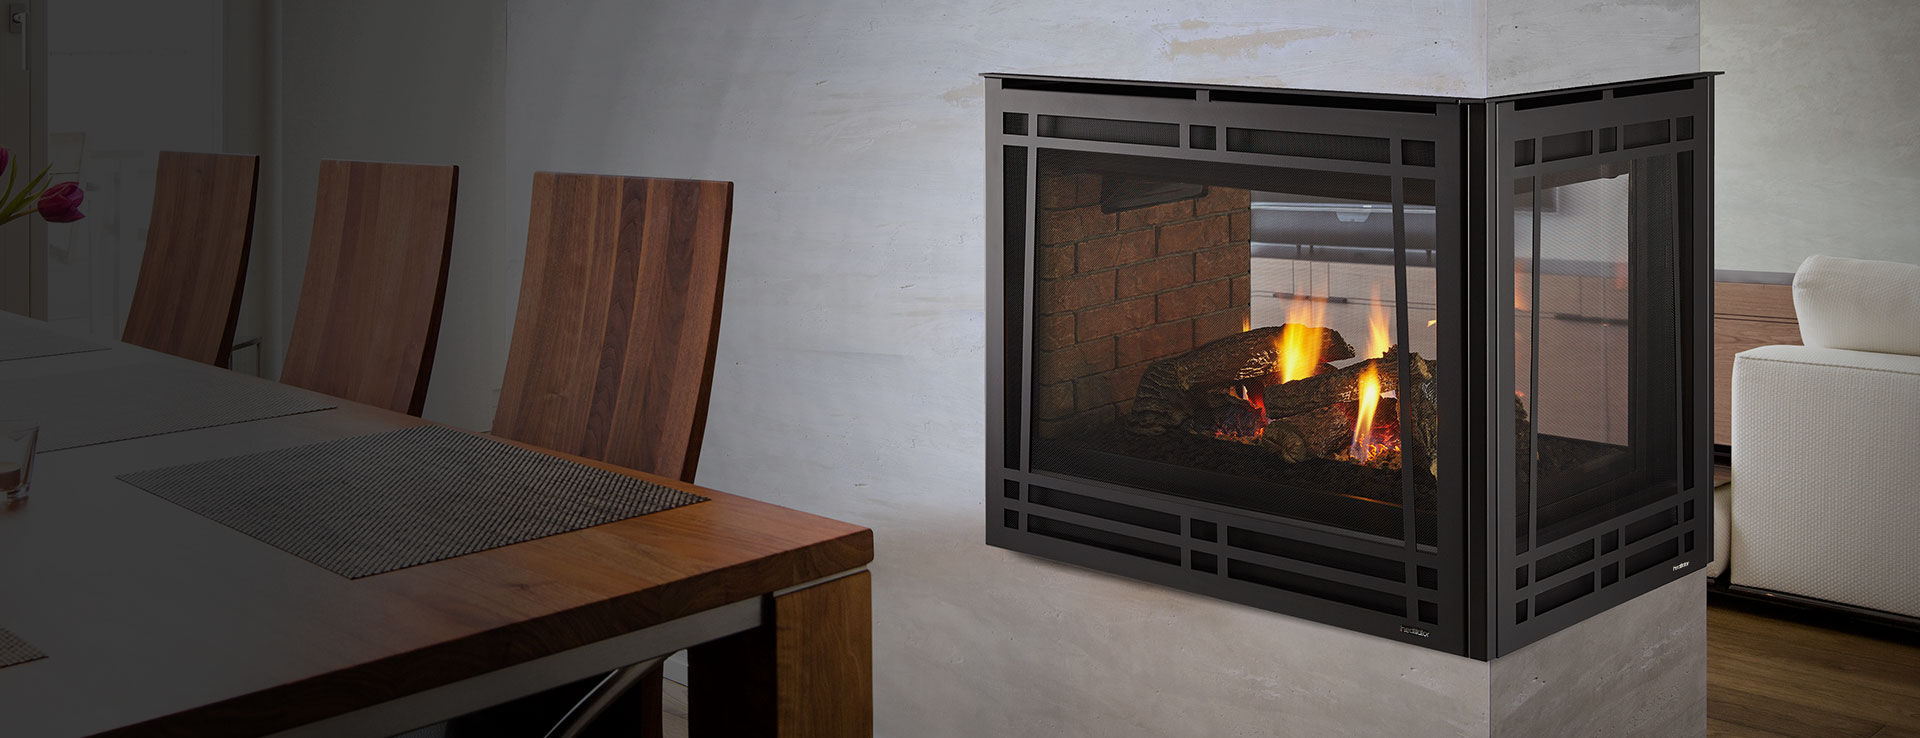 Novus Fireplace Gas Fireplace Traditional Closed Hearth 3 Sided Peninsula